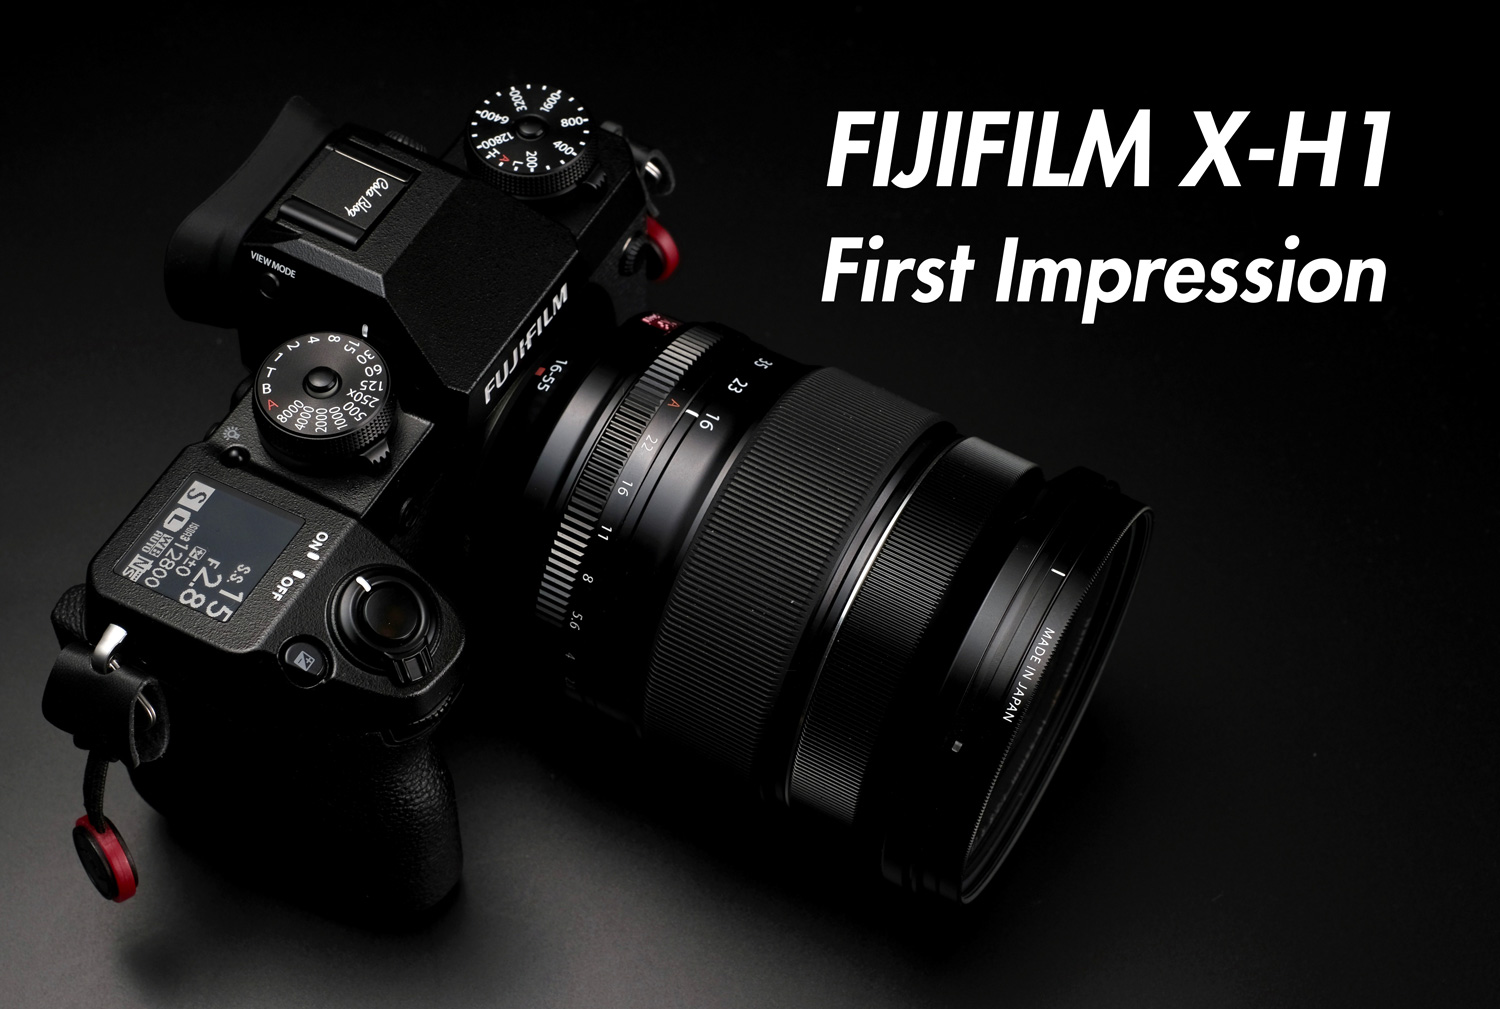 FUJIFILM X-H1 First Impression